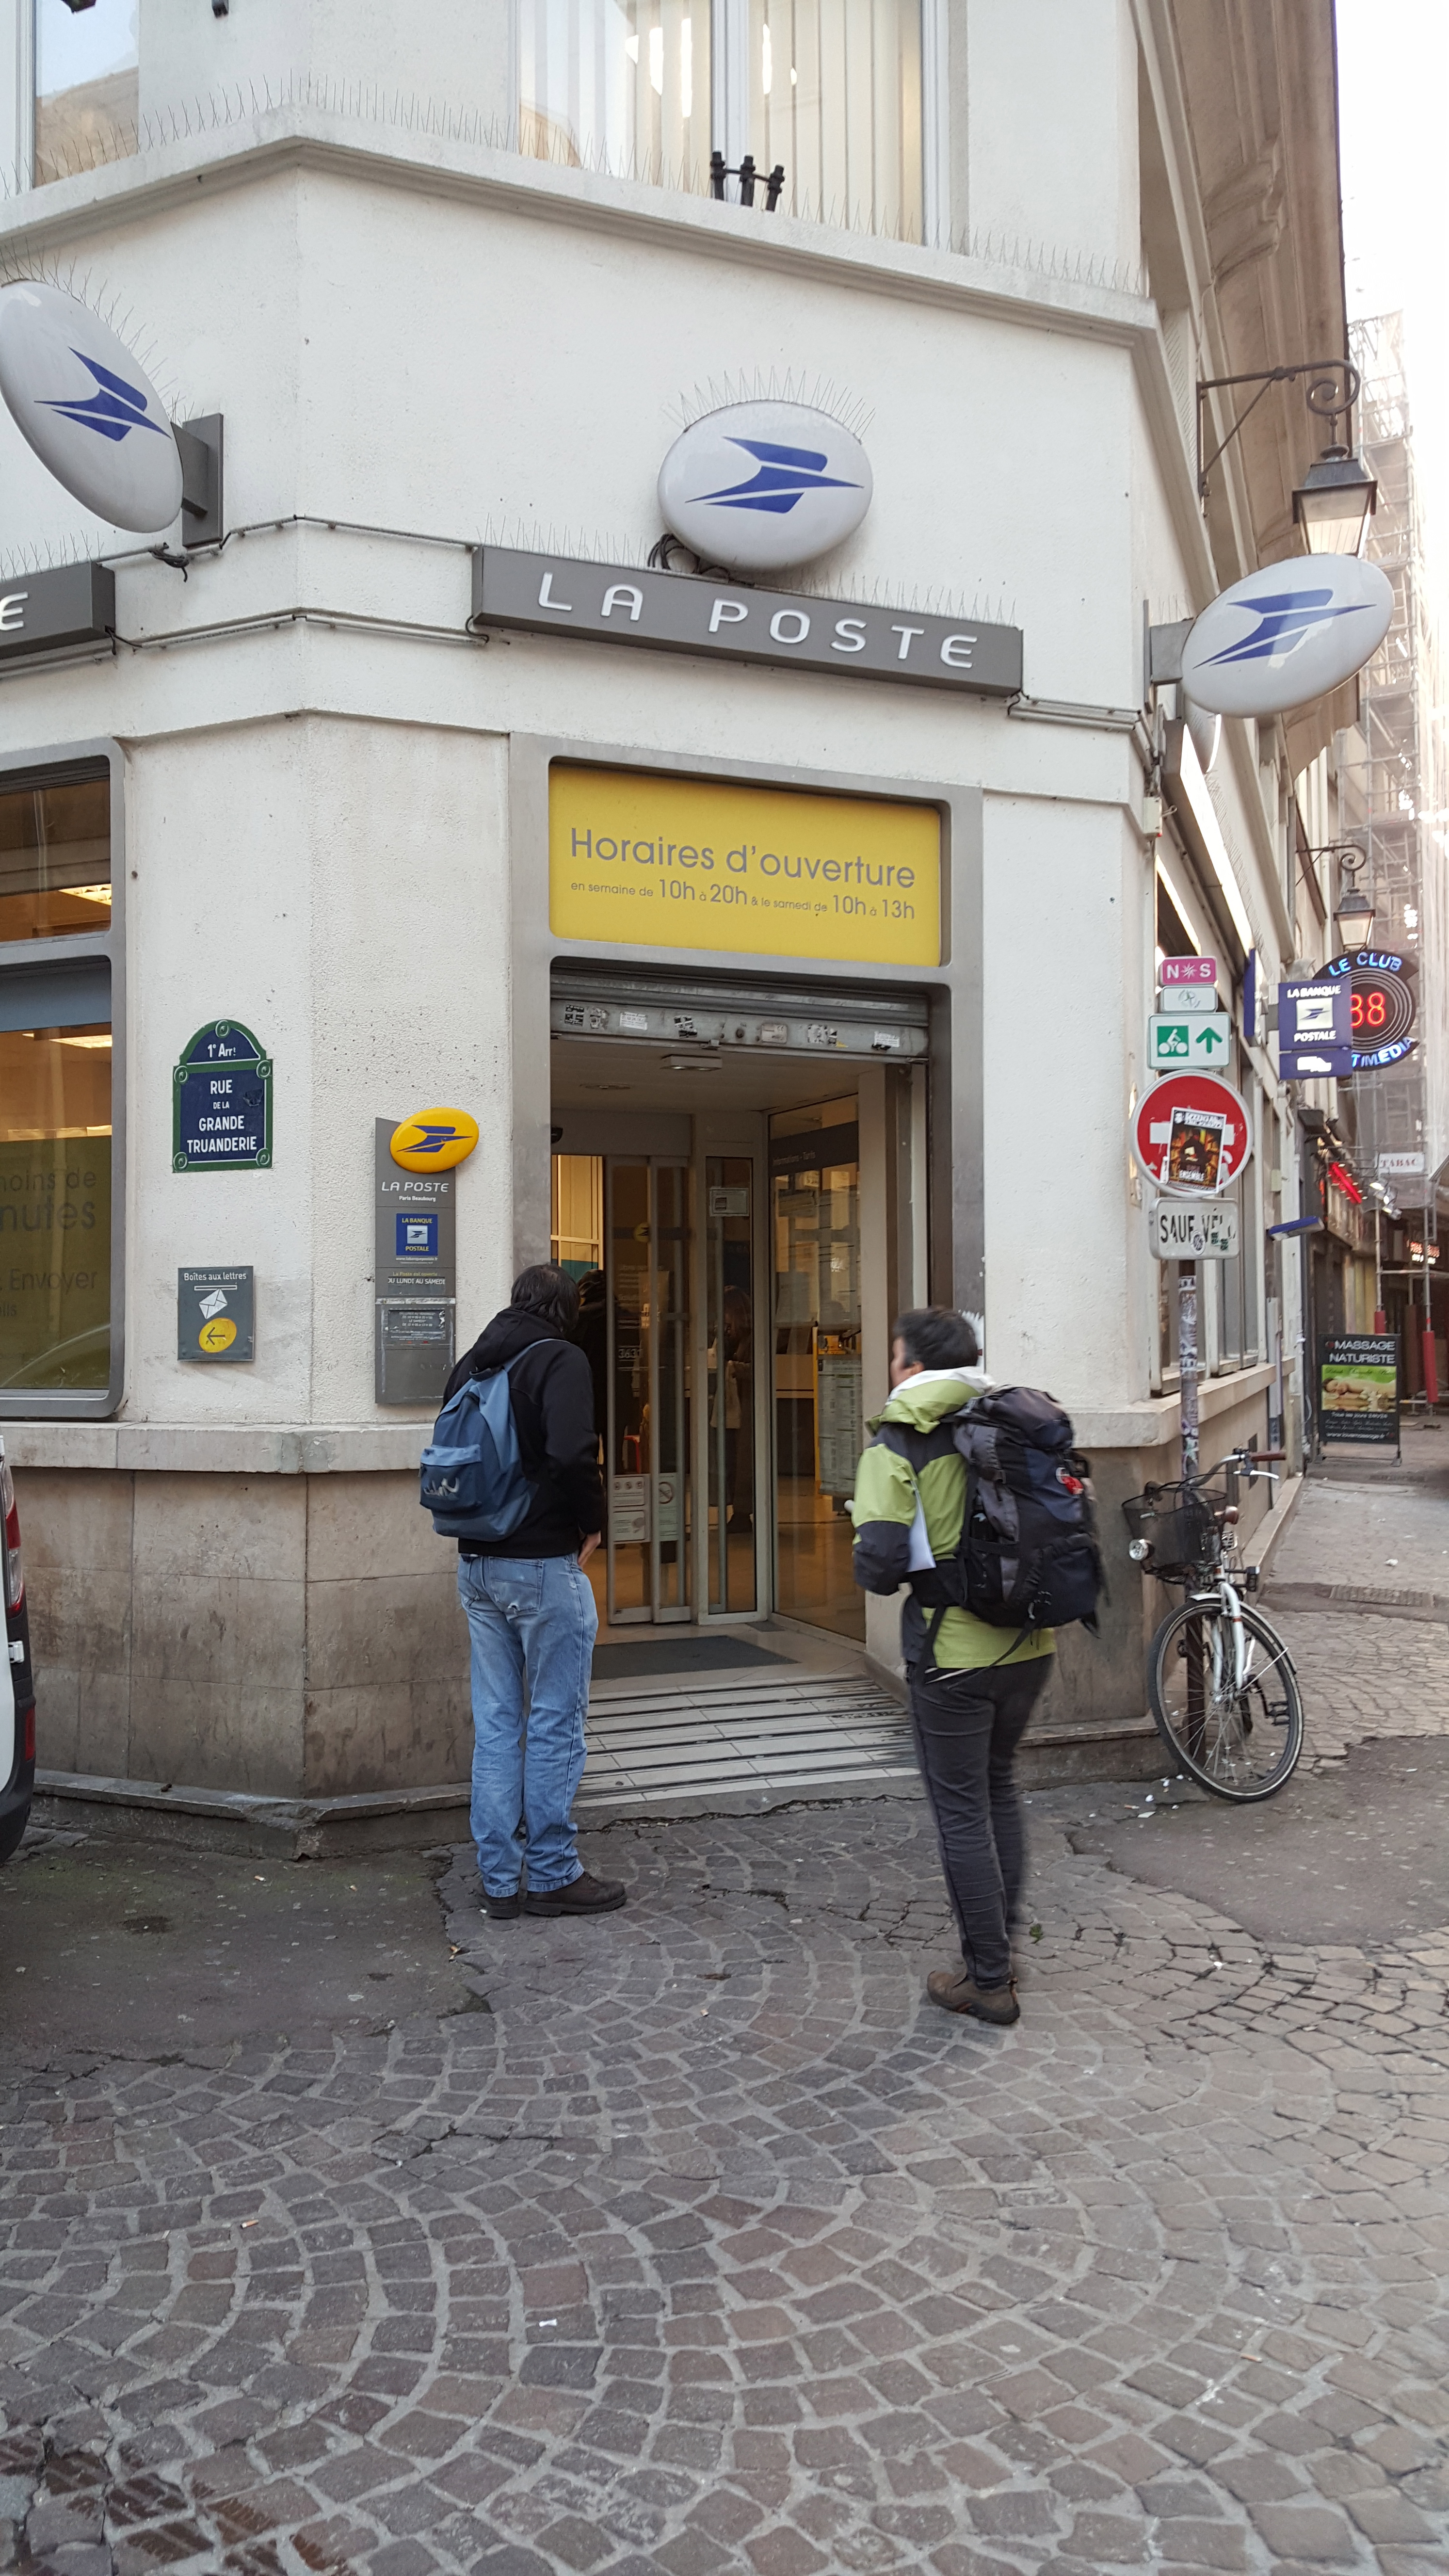 Paris post office with postal bank branch